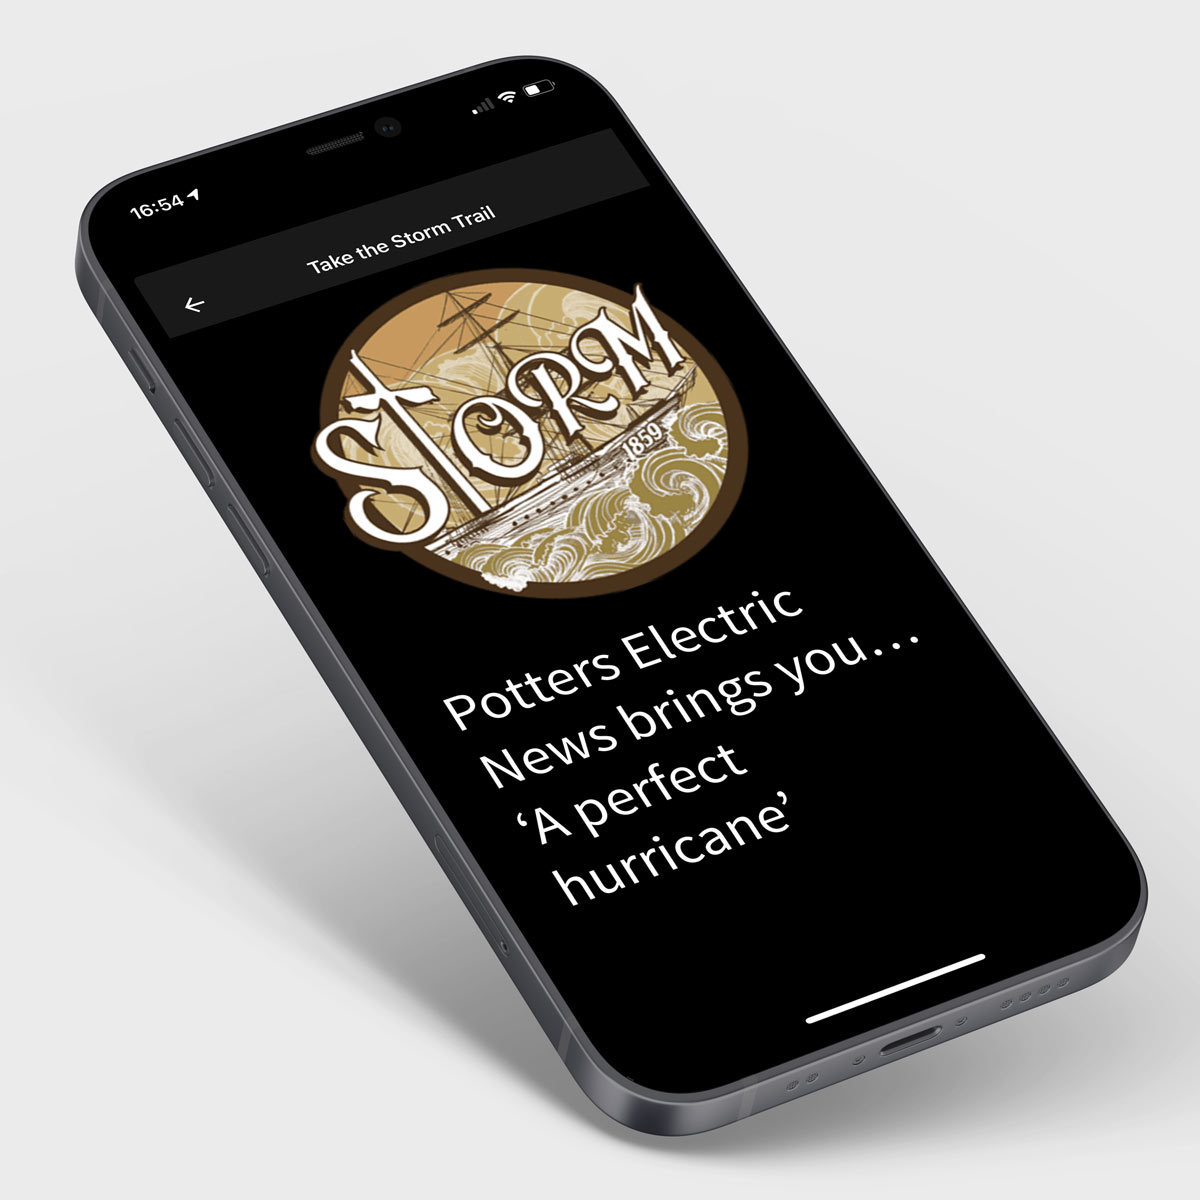 Mobile device showing the 'Storm' augmented reality experience as part of the Cadw app